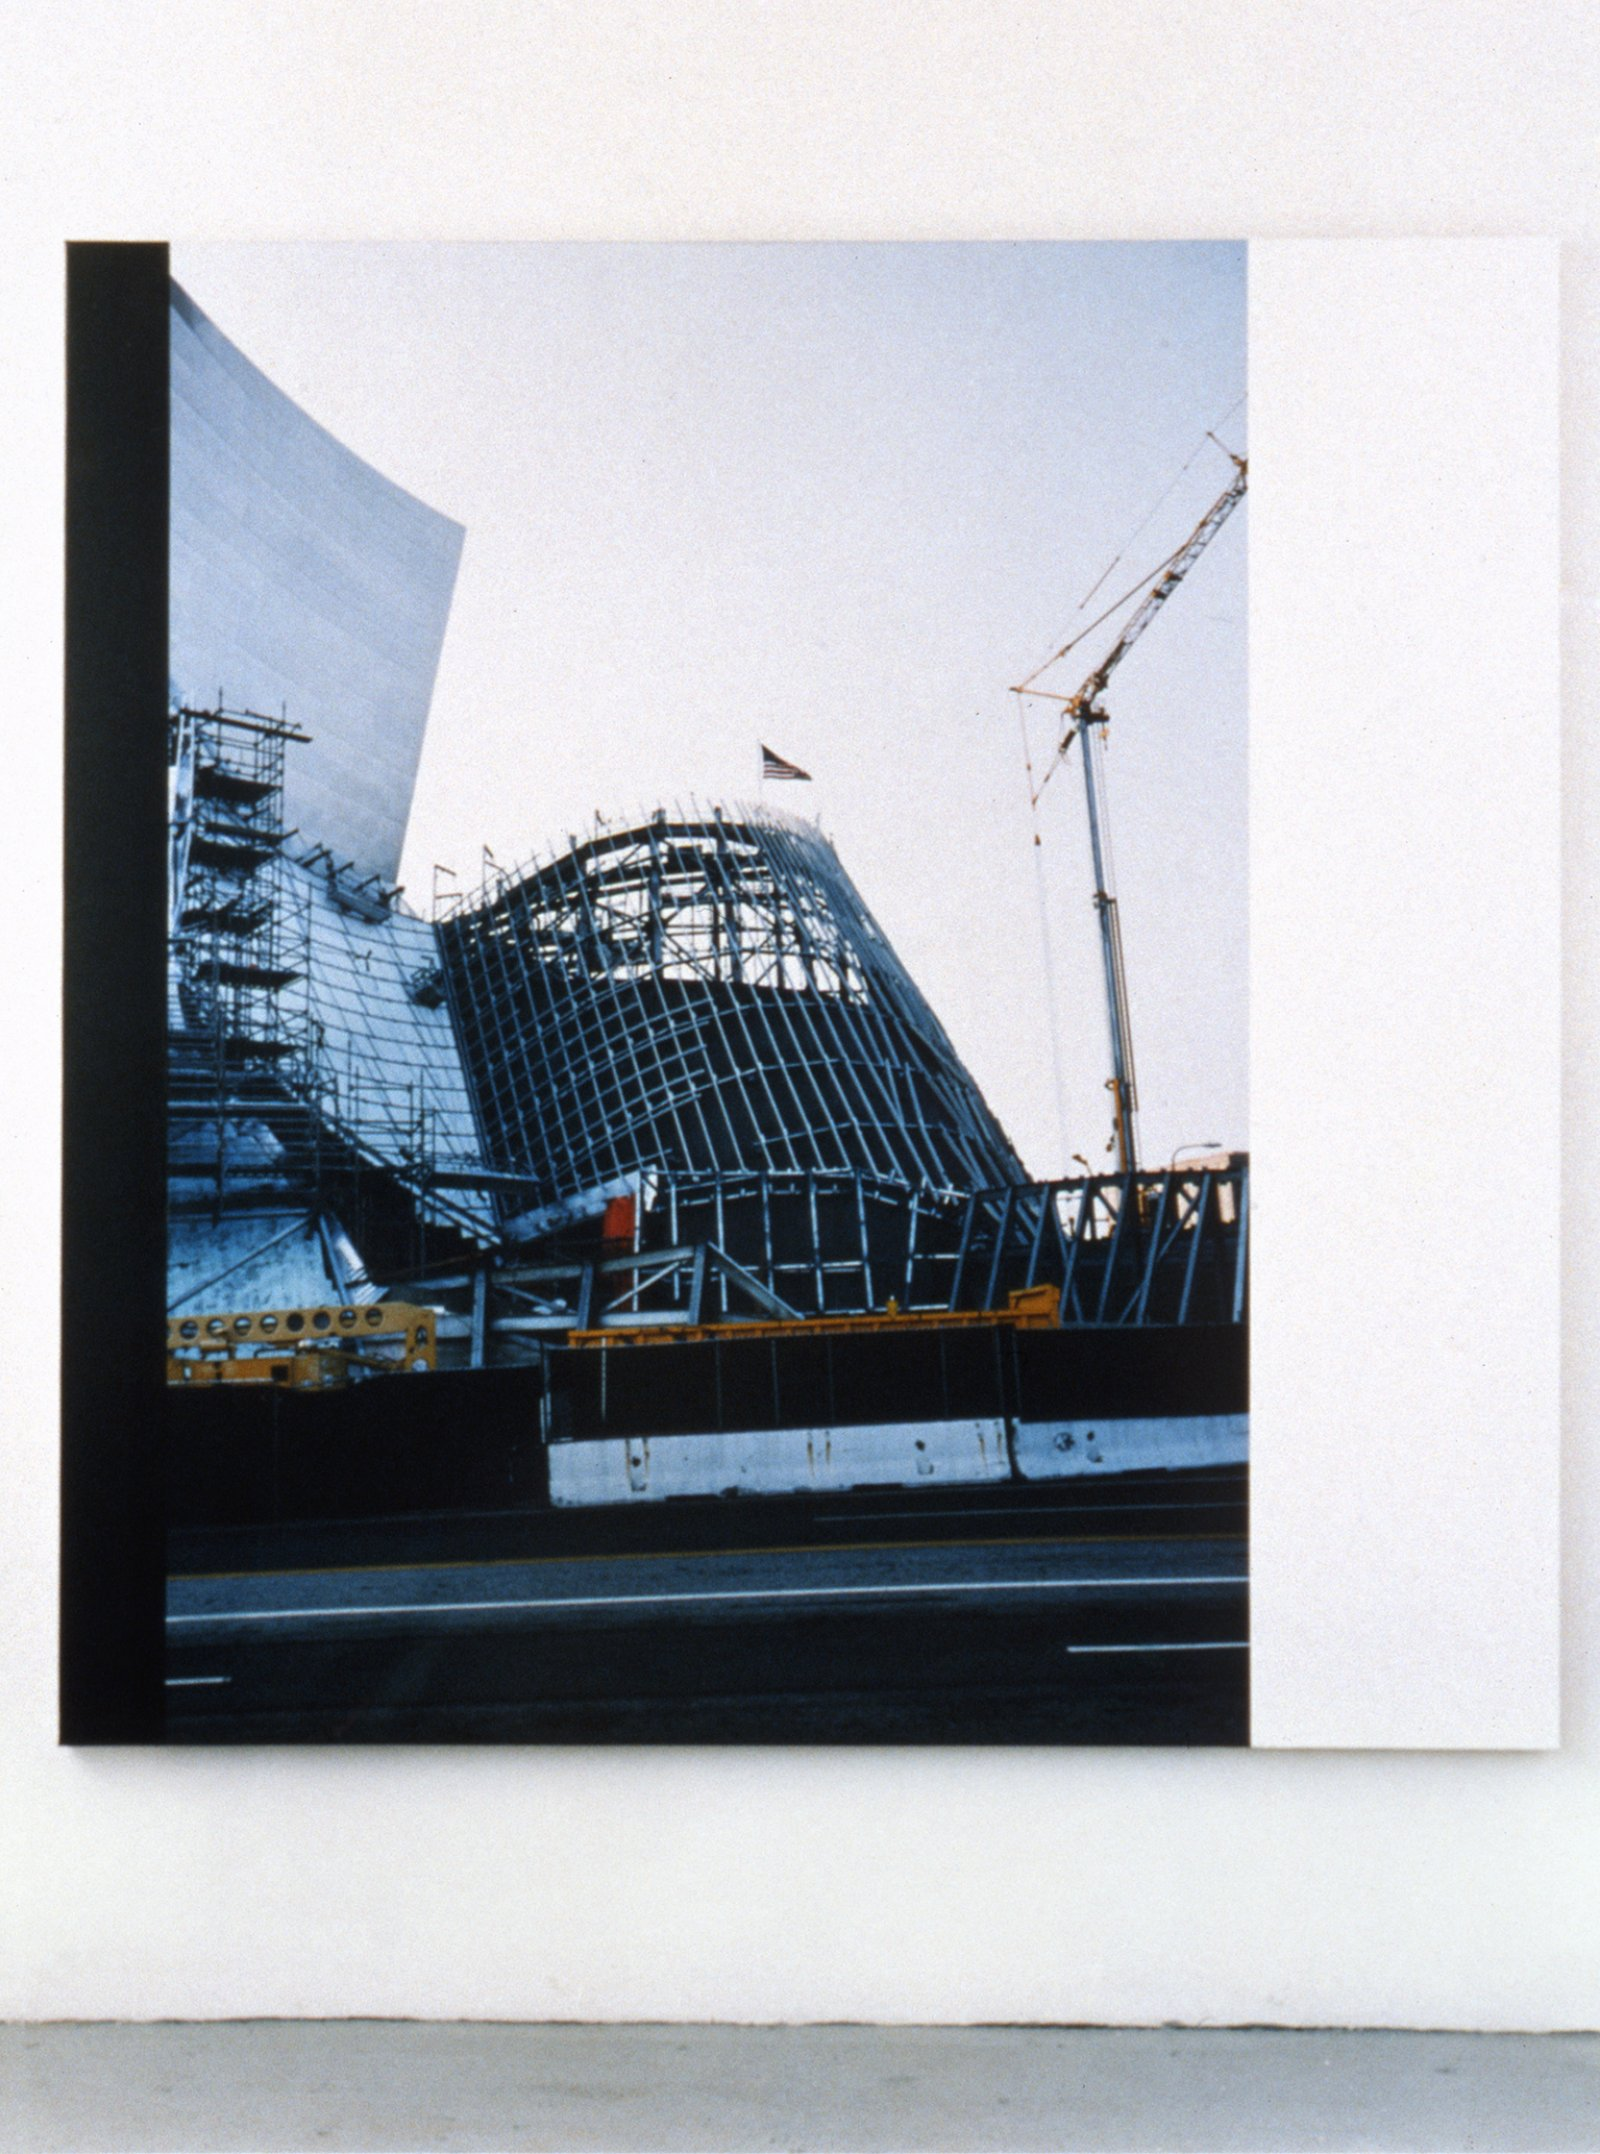 Ian Wallace,Construction Site LA I, 2003,photolaminate and acrylic on canvas, 72 x 72 in. (183 x 183 cm)